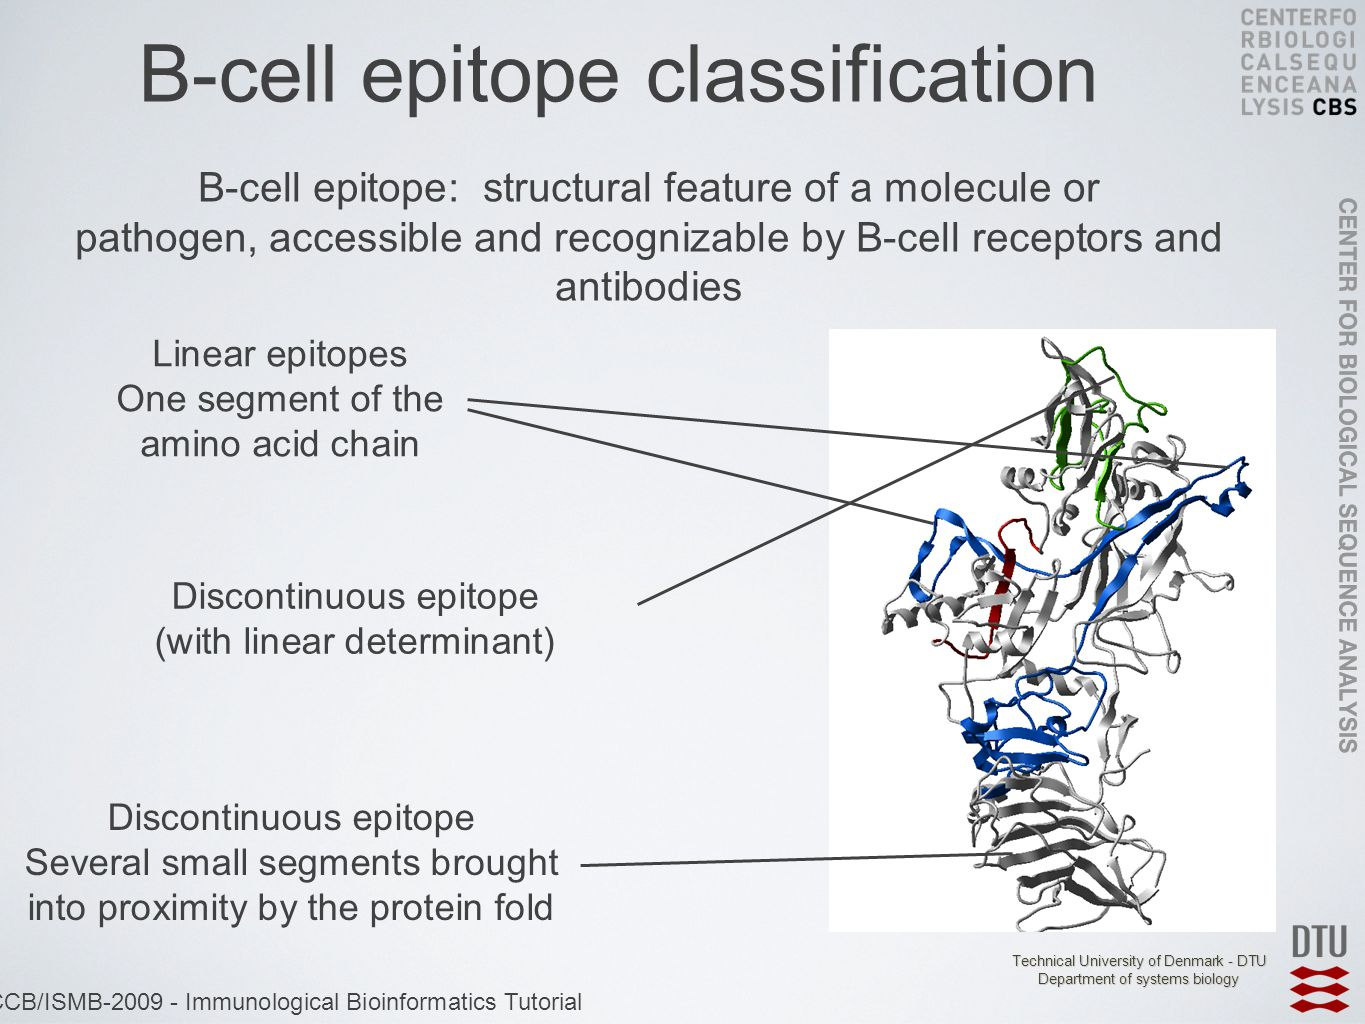 Technical University of Denmark - DTU Department of systems biology ECCB/ISMB-2009 - Immunological Bioinformatics Tutorial B-cell epitope classification Linear epitopes One segment of the amino acid chain Discontinuous epitope (with linear determinant) Discontinuous epitope Several small segments brought into proximity by the protein fold B-cell epitope: structural feature of a molecule or pathogen, accessible and recognizable by B-cell receptors and antibodies